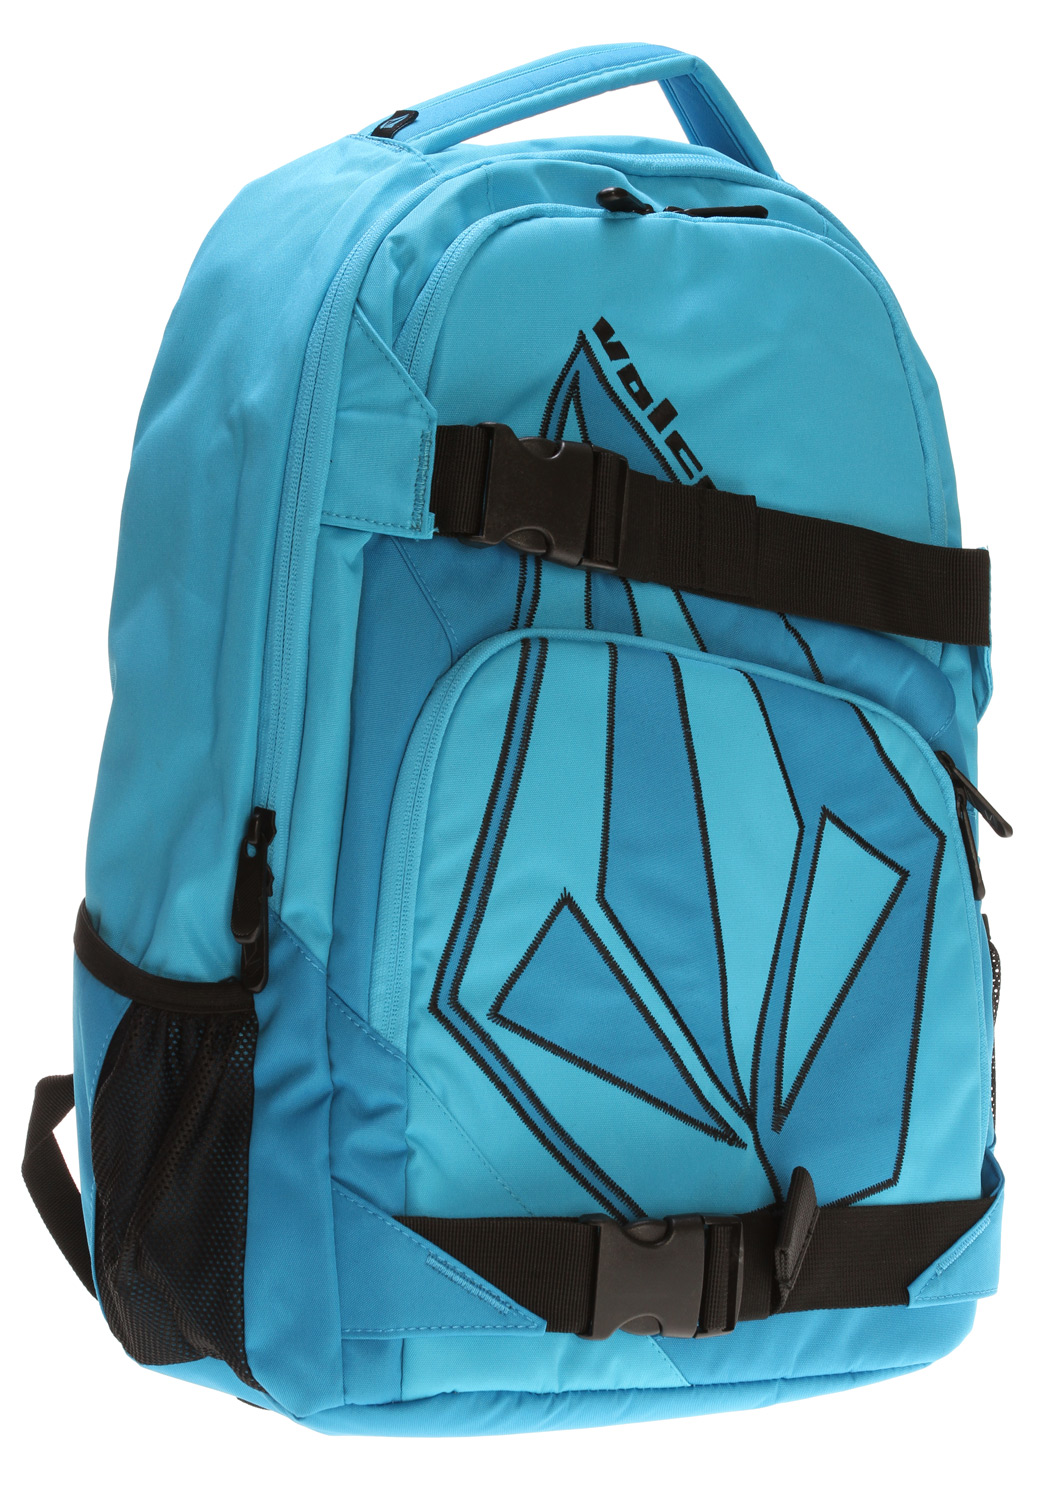 "Surf Get on with your travels carrying the ultra comfortable and convenient Volcom Purma Backpack. This backpack features four compartments providing great storage. Store all your items in this Volcom Purma Backpack and be set to hit the road. Featuring its Volcom logo print throughout, look stylish. So comfortable and easy to use, this bag is so practical, dive in and get one today.Key Features of the Volcom Purma Backpack: 19 .5""h x 11.75""w X 7.5""d Four Compartment Backpack Exterior ""Stone"" Window Applique ""Volcom"" Embroidery Back Panel Quilt - $29.95"